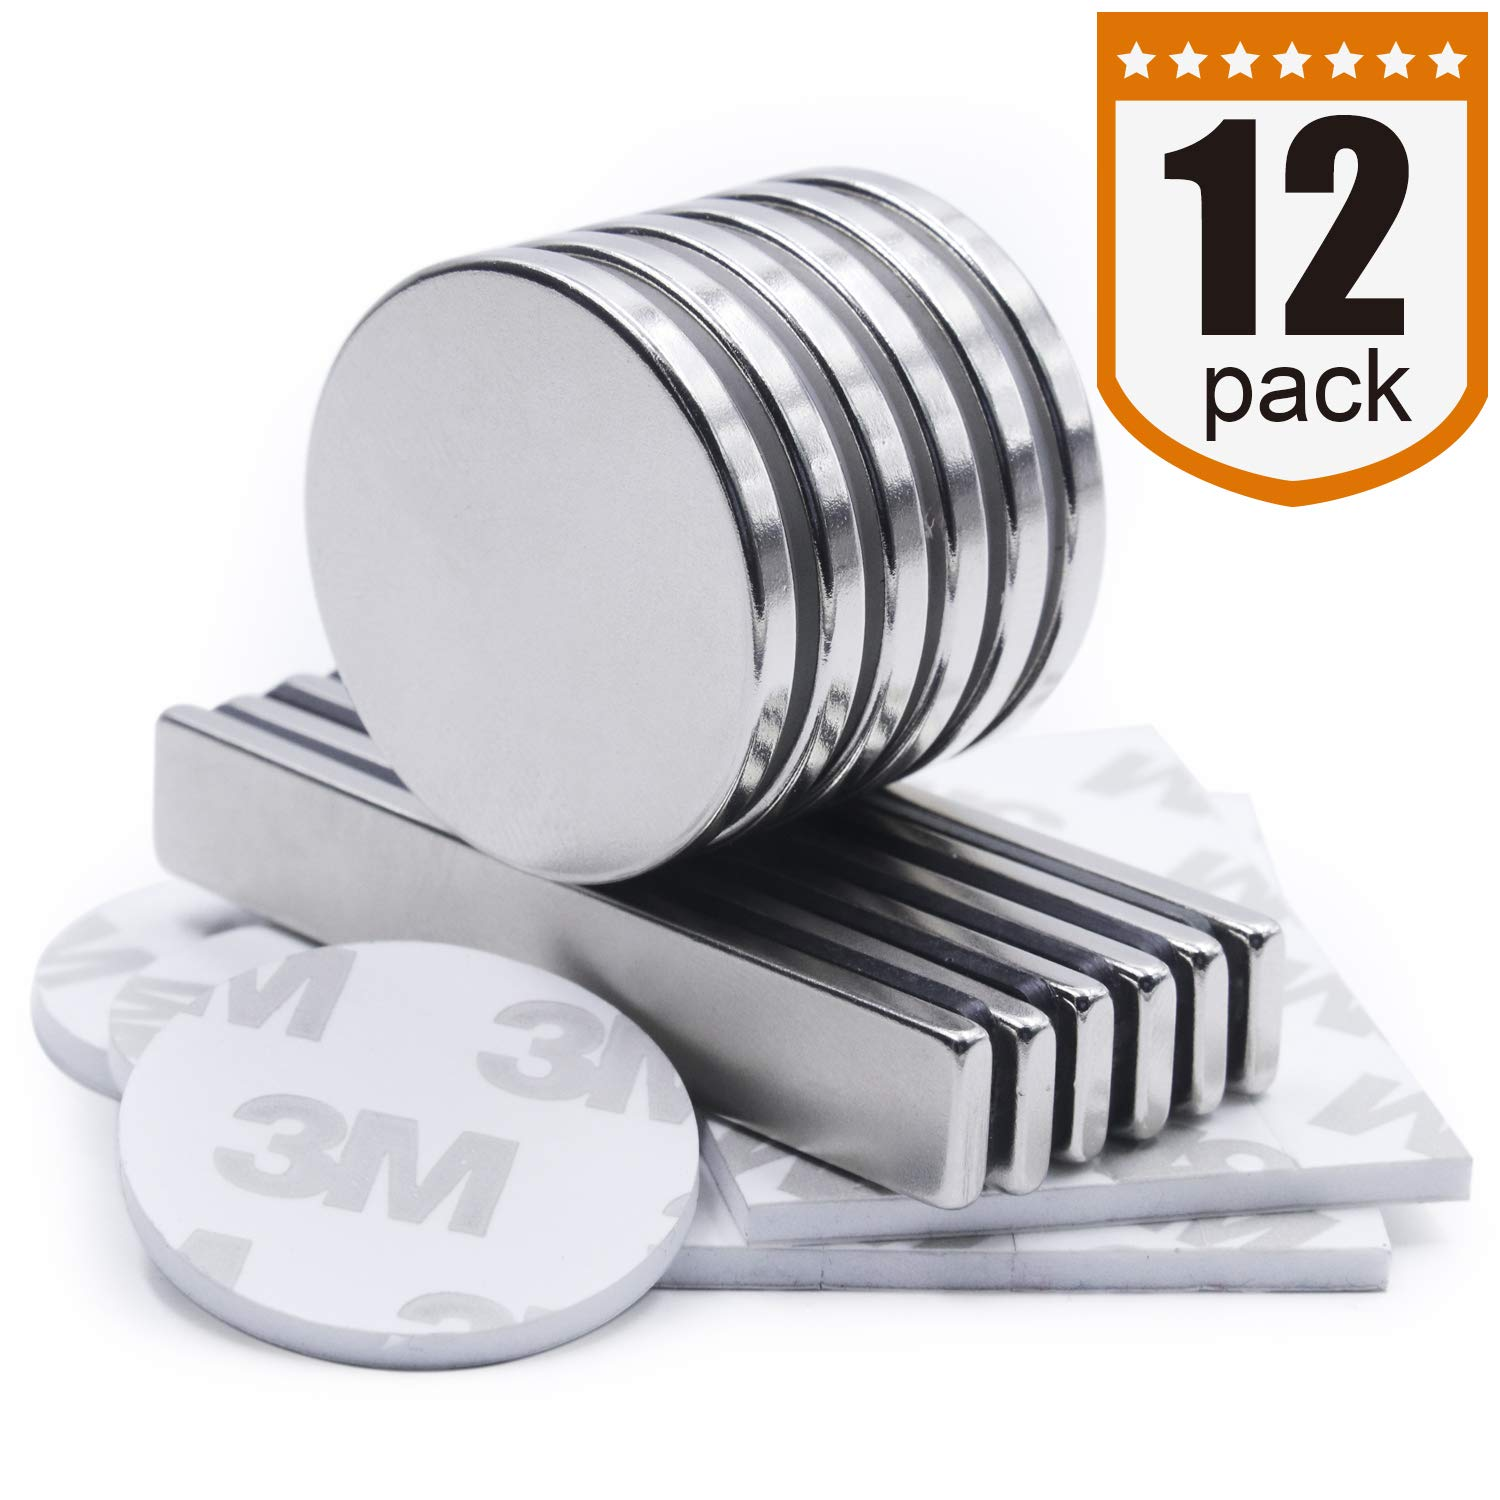 Neodymium Bar/Disc Magnets Combo 12 Pack - Rare Earth Magnets for Multiuse DIY Projects, Tool Storage, Refrigerator, Office, Arts and Crafts